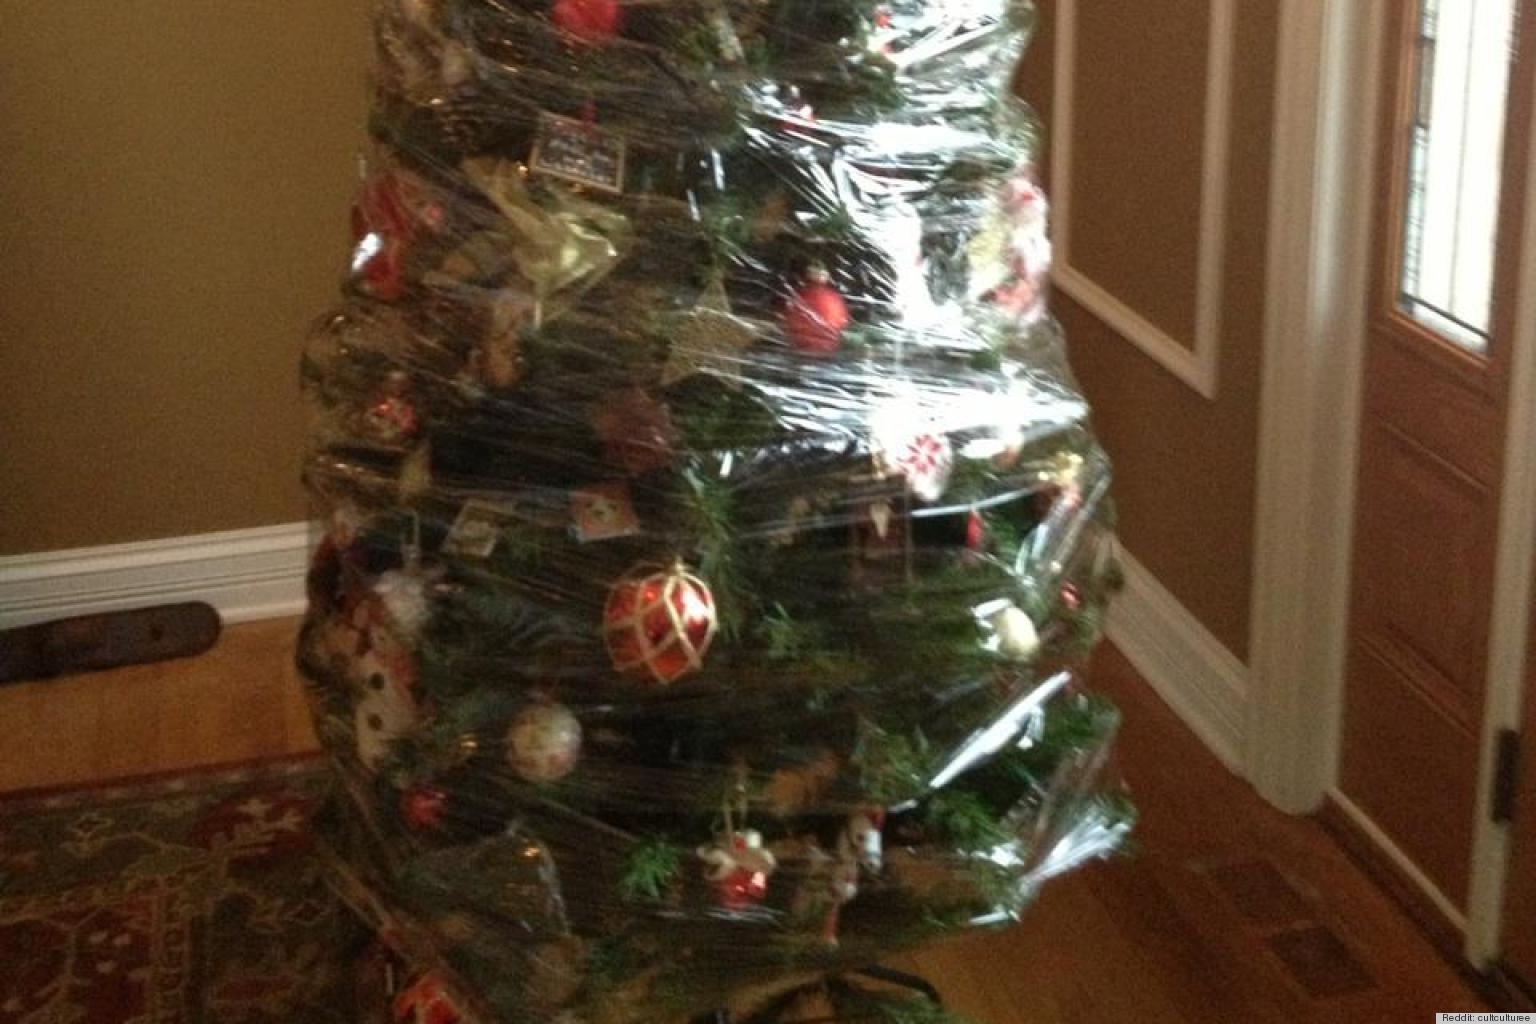 Is It Time To Take Down Your Christmas Tree Yet? | HuffPost